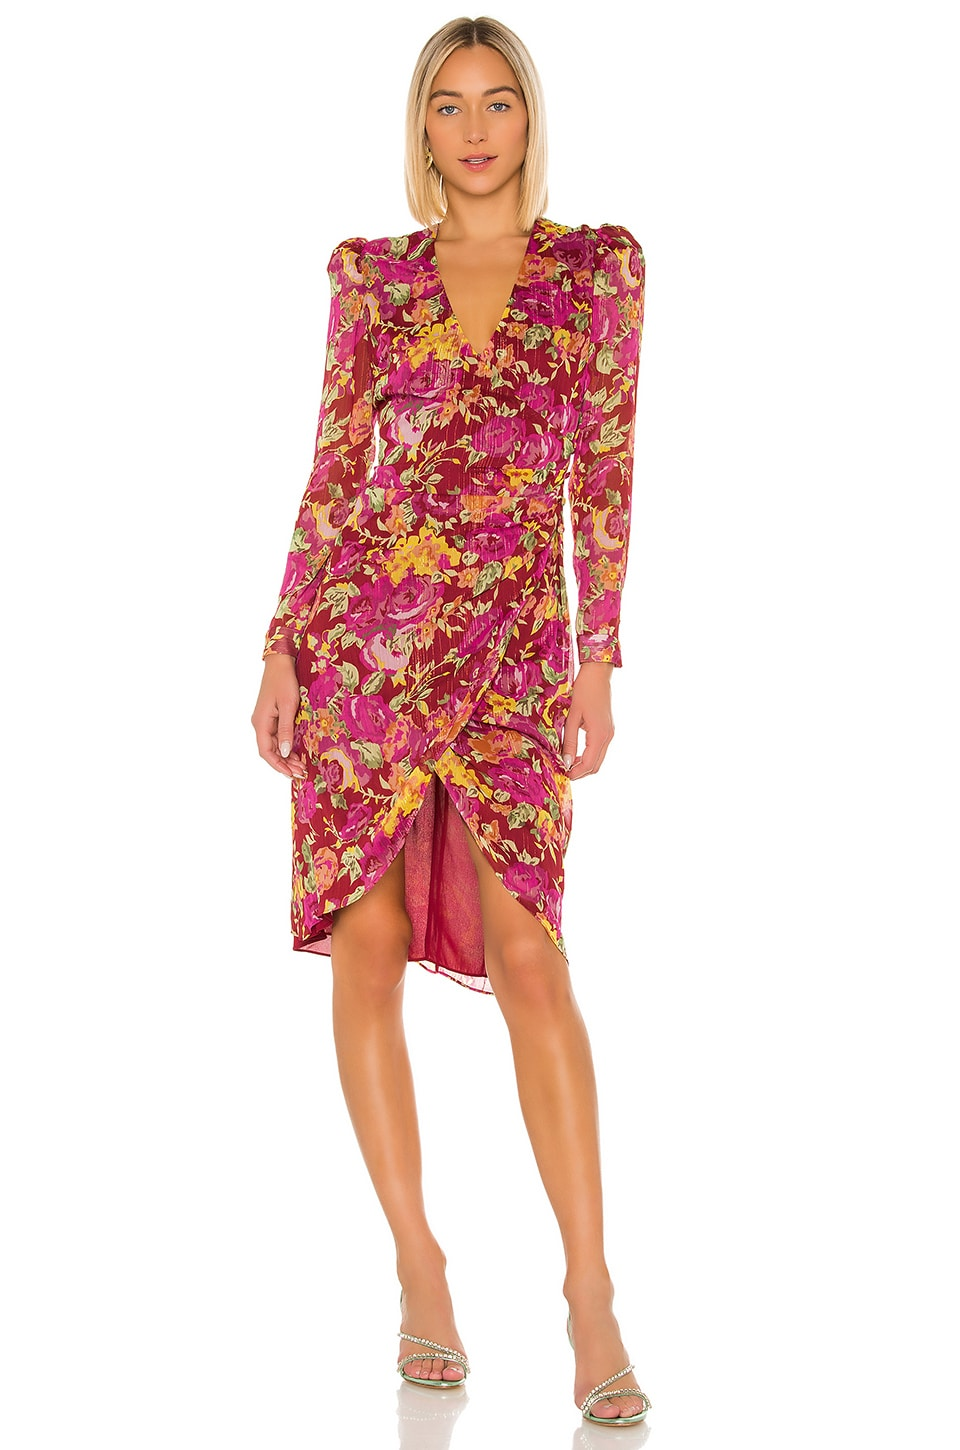 LPA Fabrizia Dress in Liza Floral